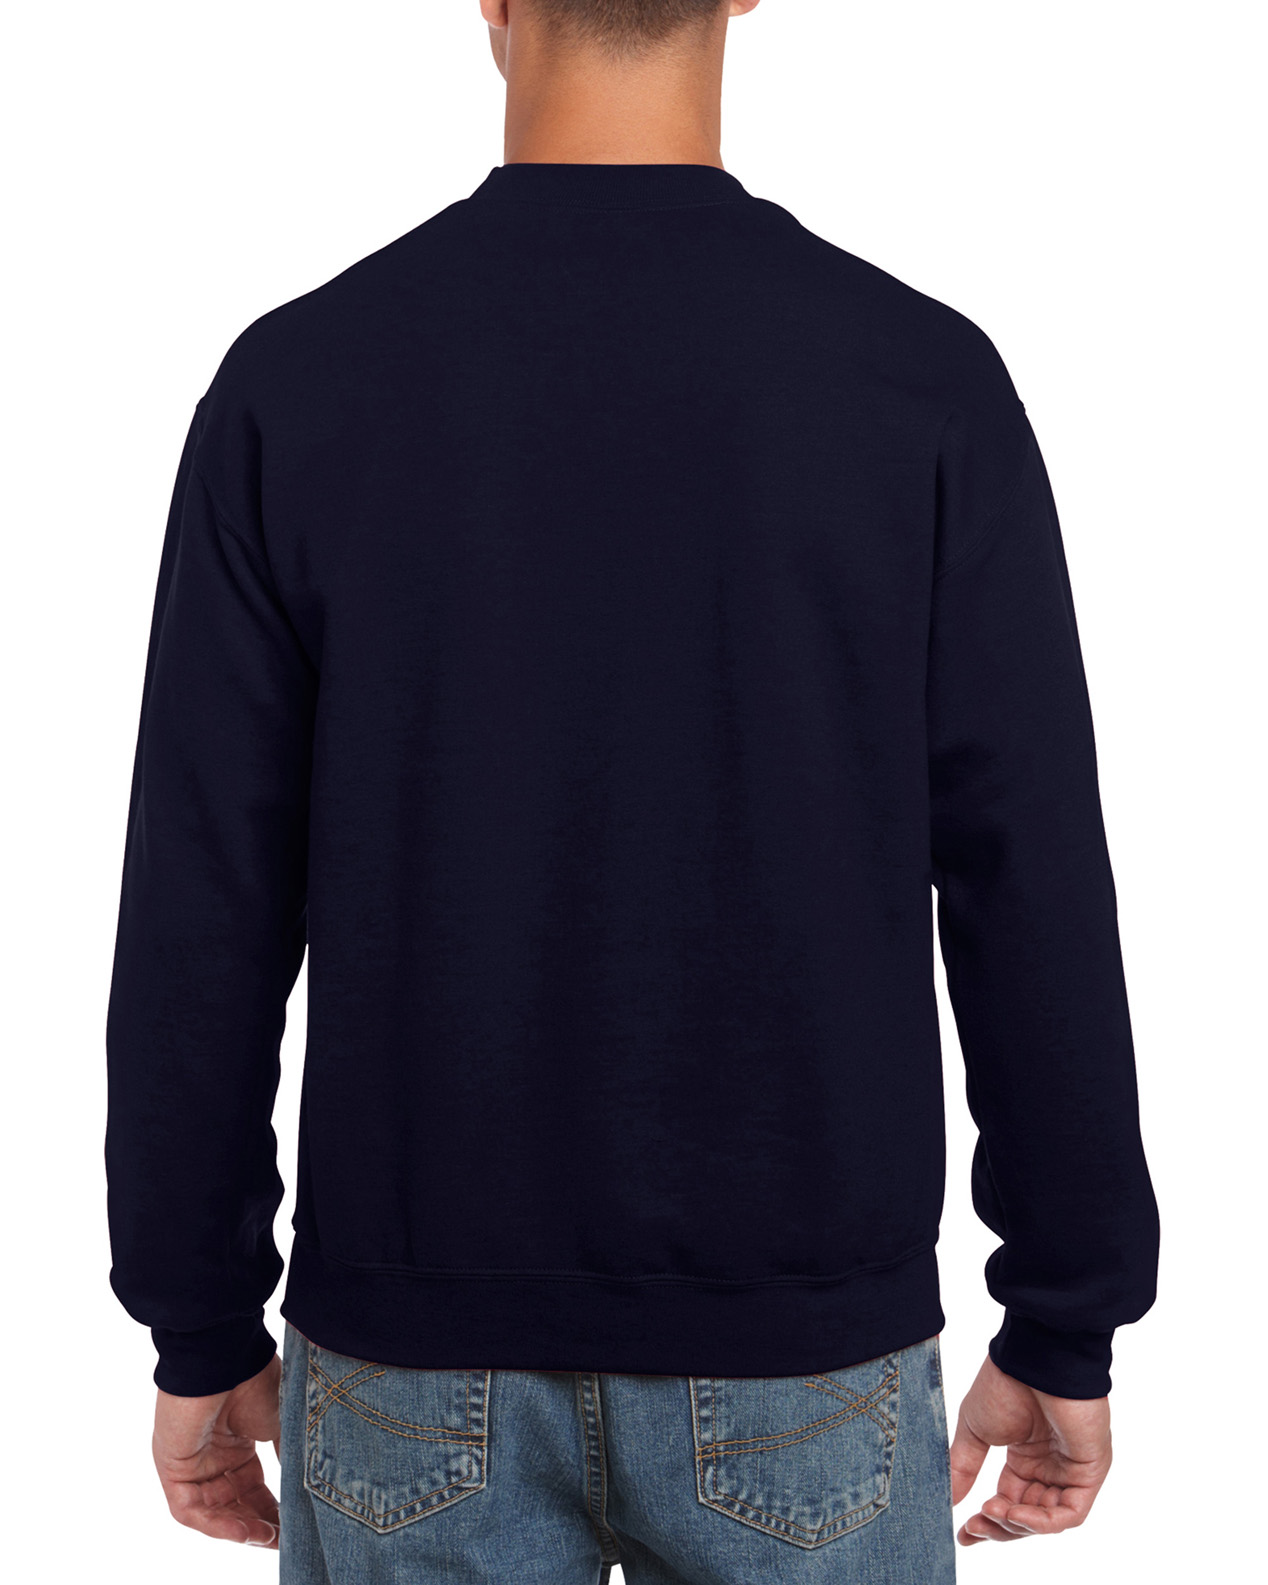 18000 | Gildan® Heavy Blend™ | 8.0 oz/yd² | Adult Crewneck ...